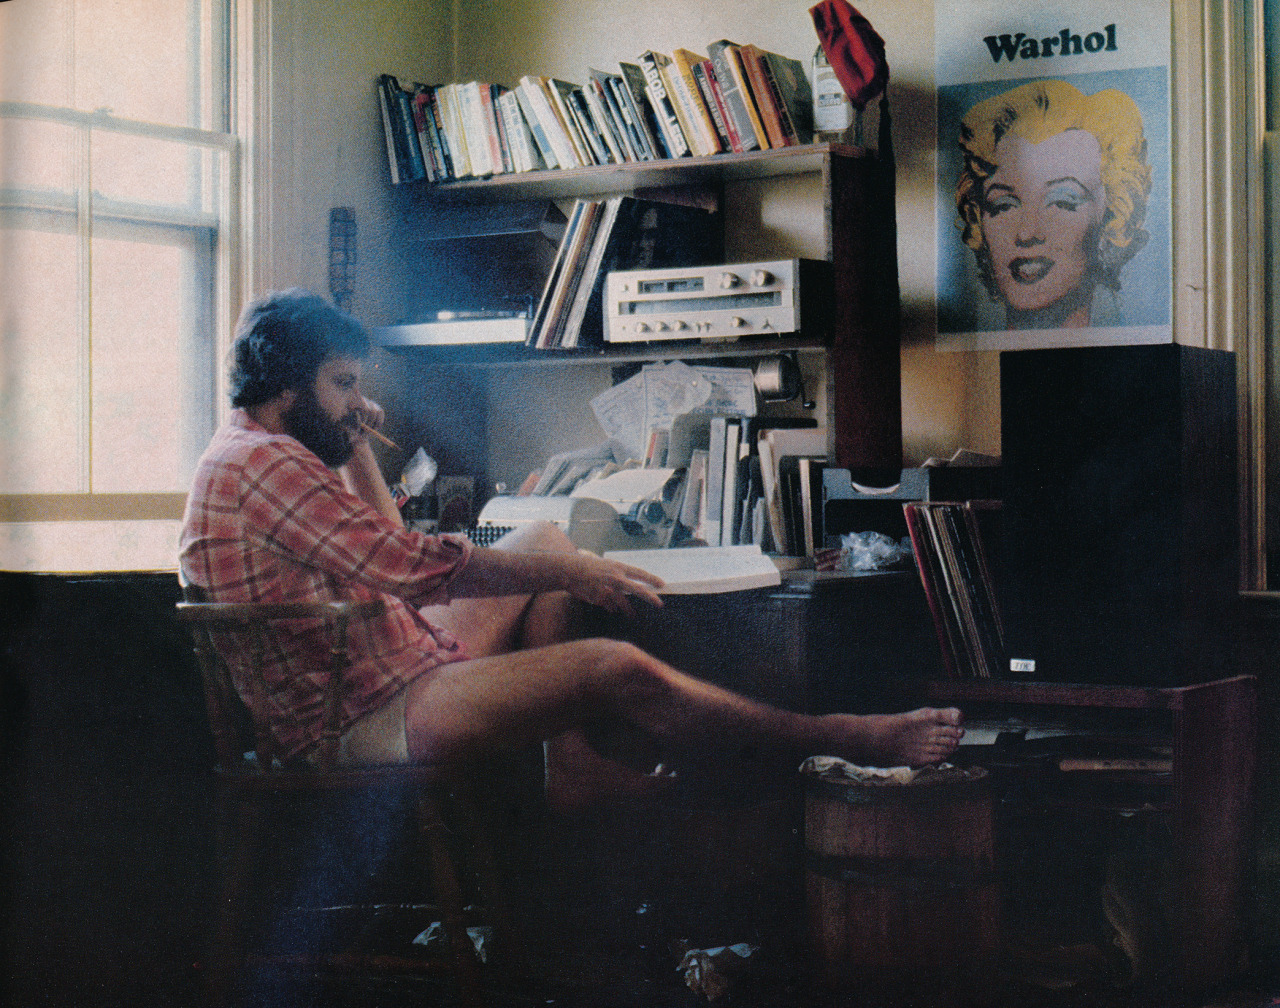 Toys for boys: Tech Hifi catalogs of vintage stereo equipment are bizarre fun